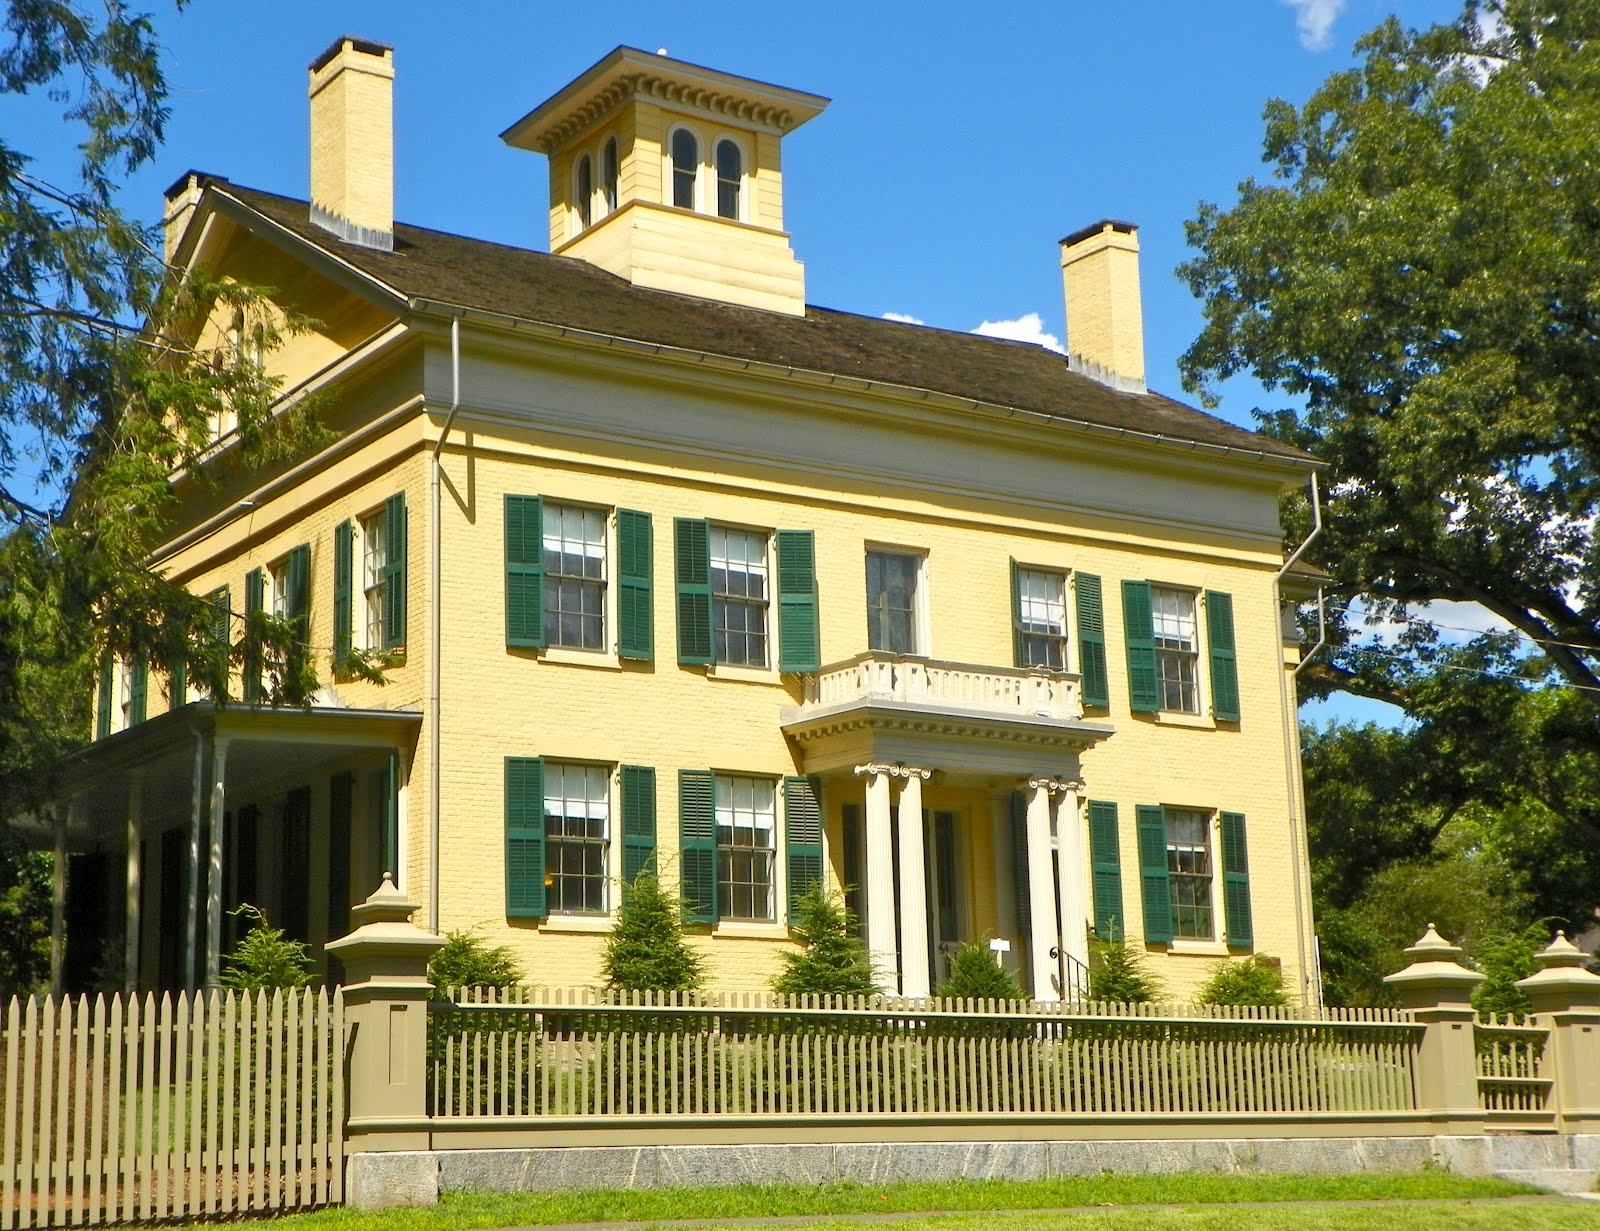 The Dickinson Homestead.